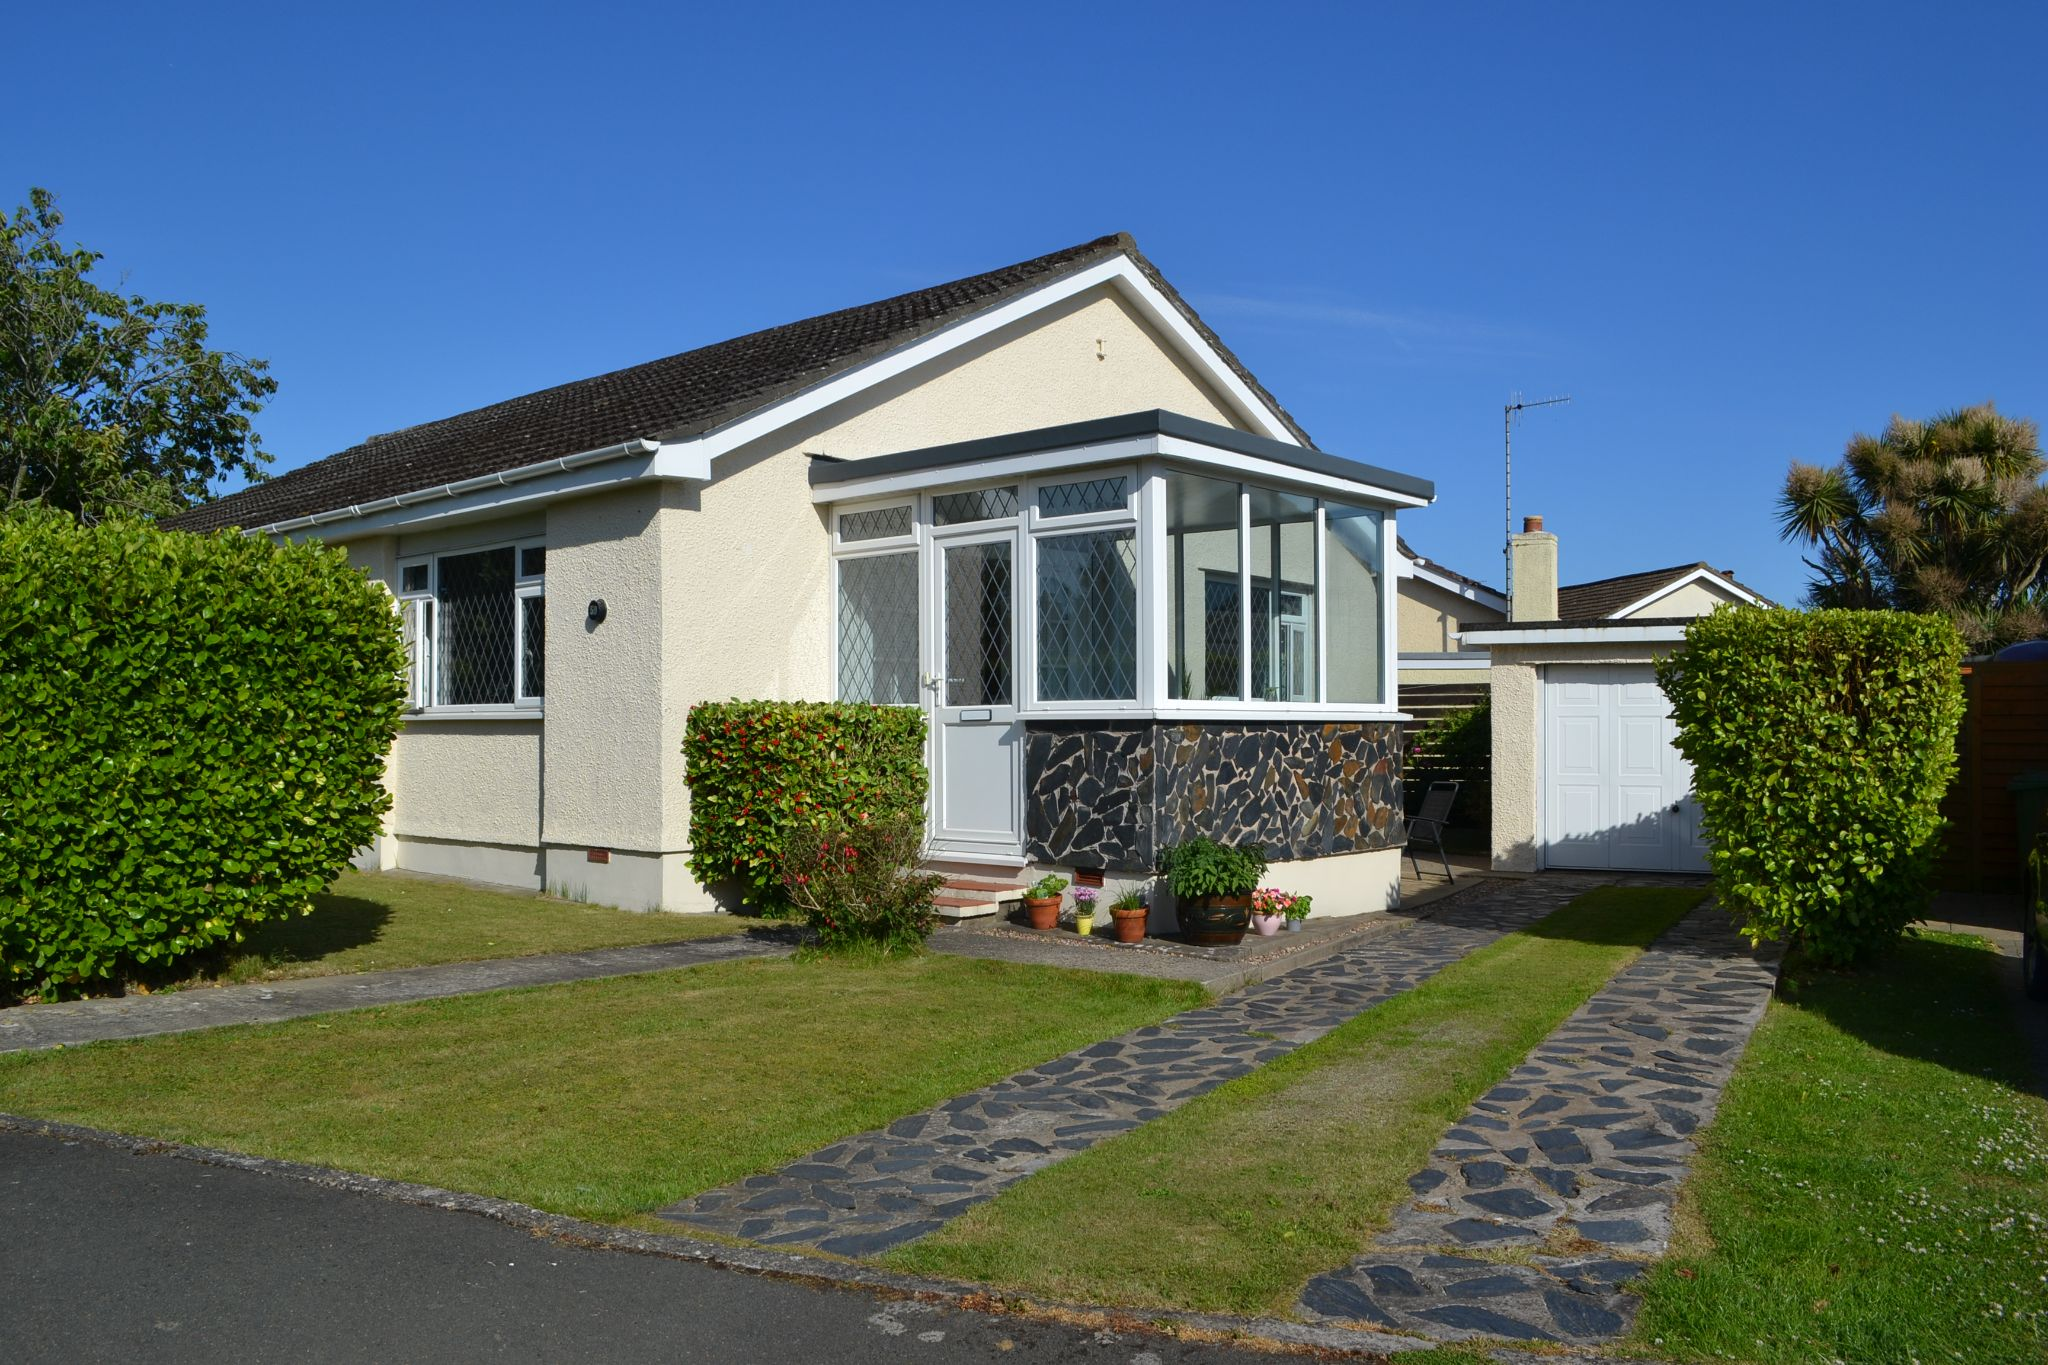 3 bedroom detached bungalow For Sale in Ballasalla - Photograph 2